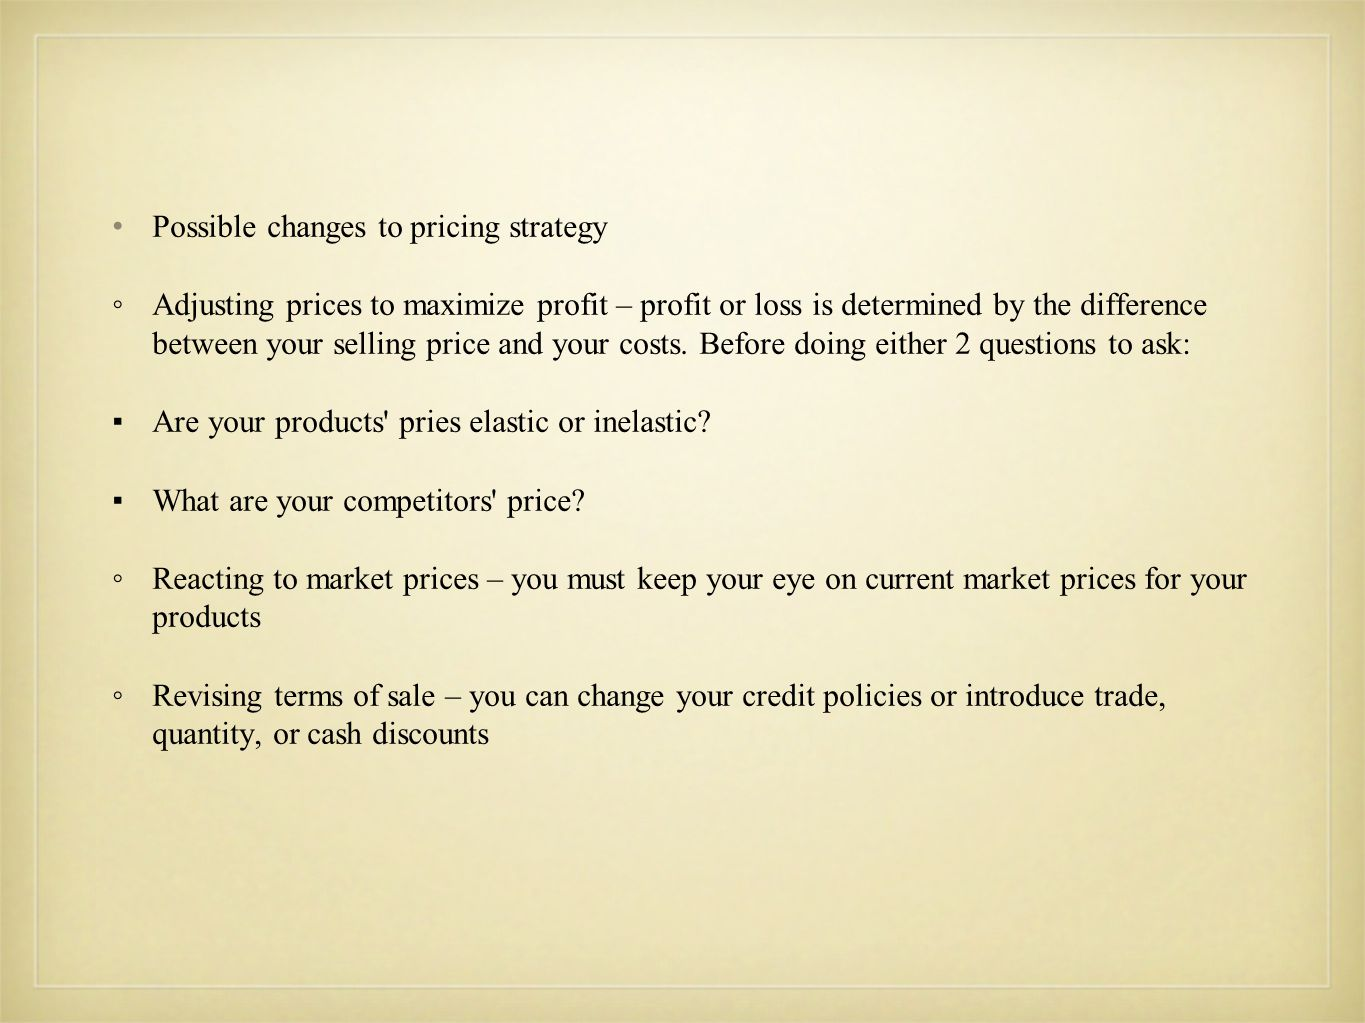 Possible changes to pricing strategy